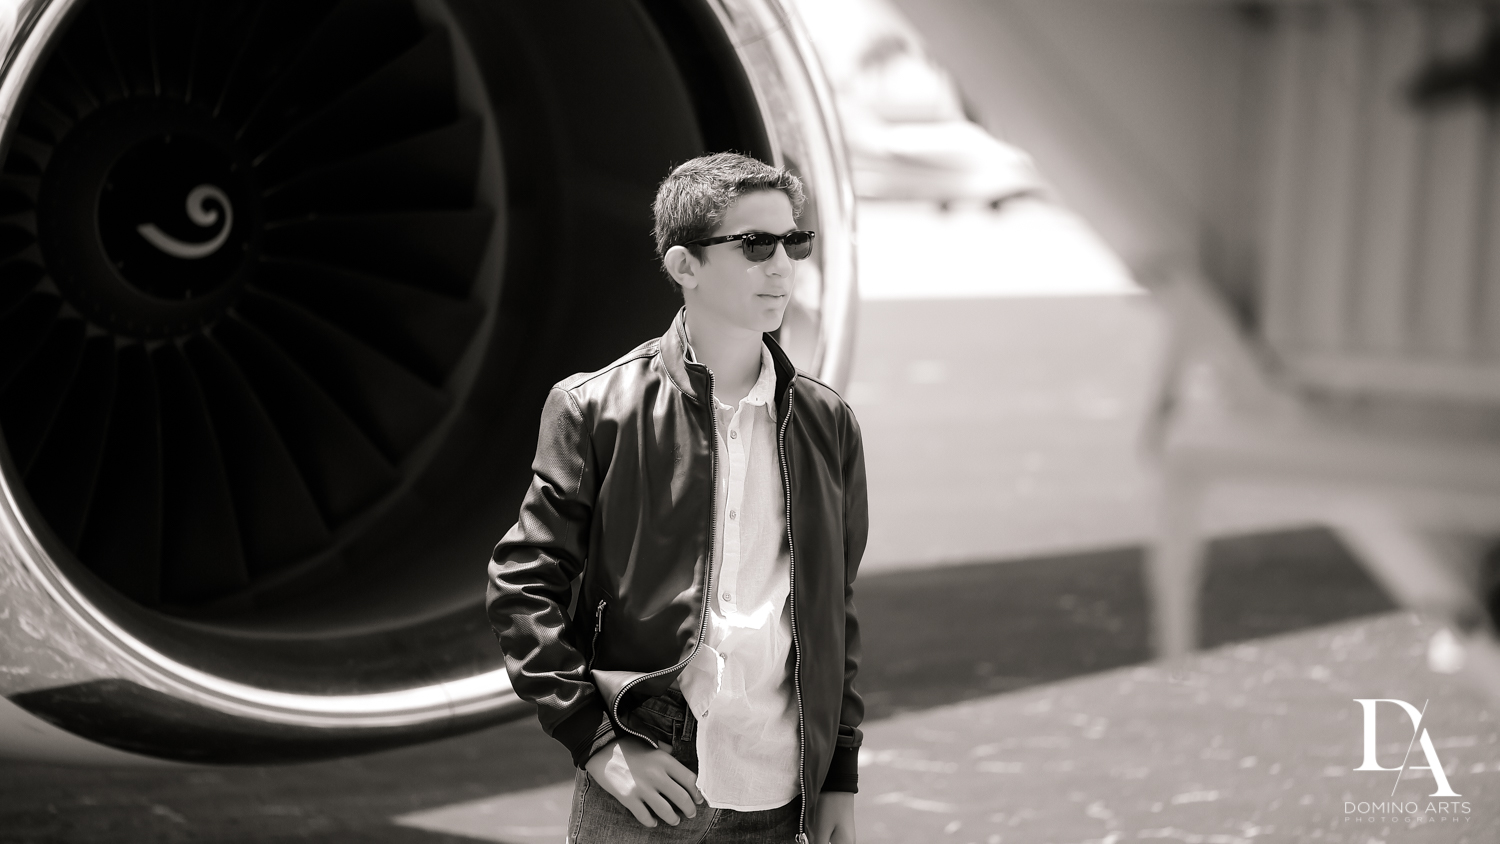 Aviator Pictures by Domino Arts Photography